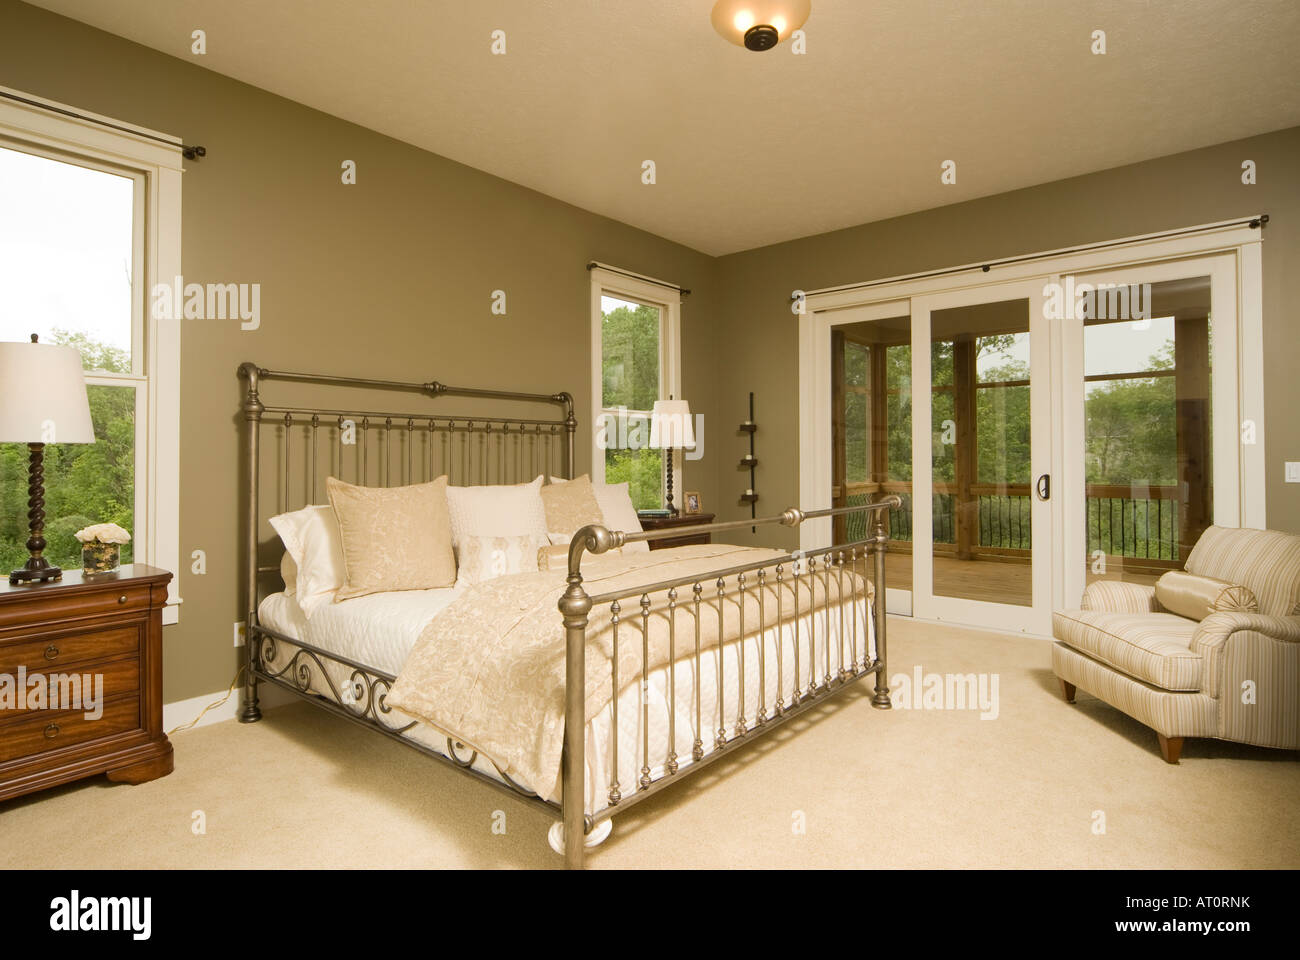 American master bedroom with king size bed and sliders to ...